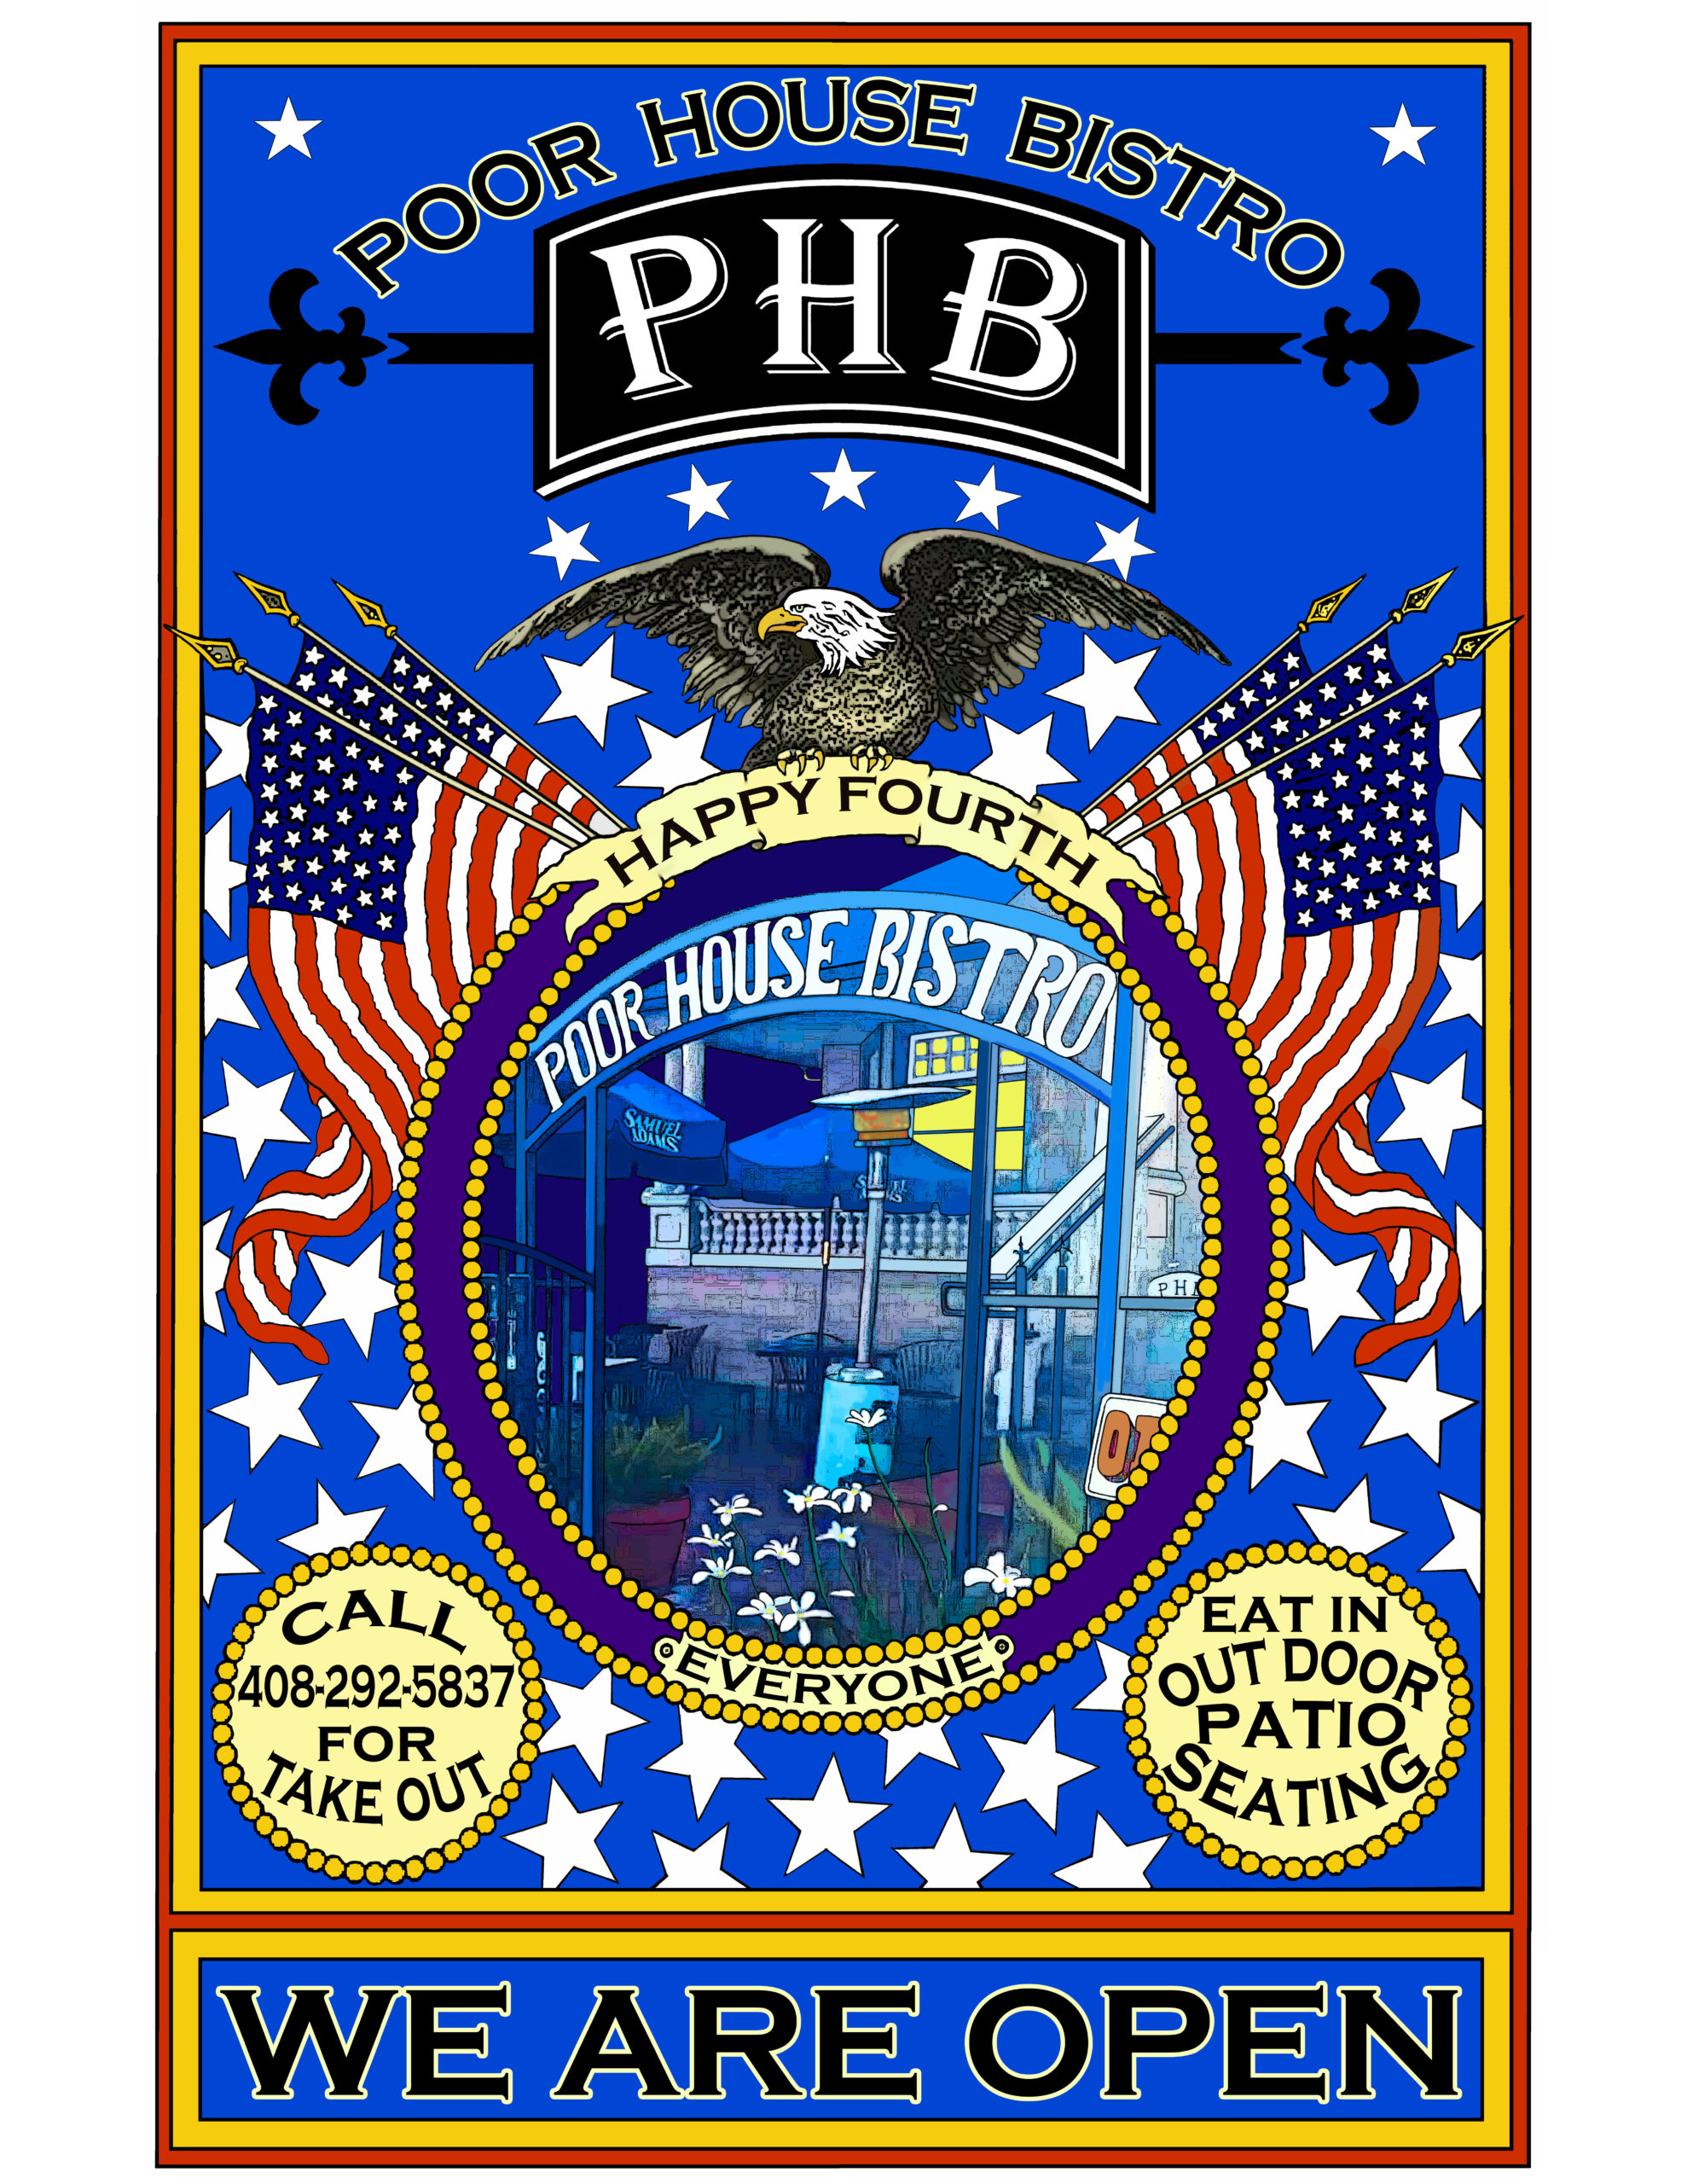 phb-4th-of-july